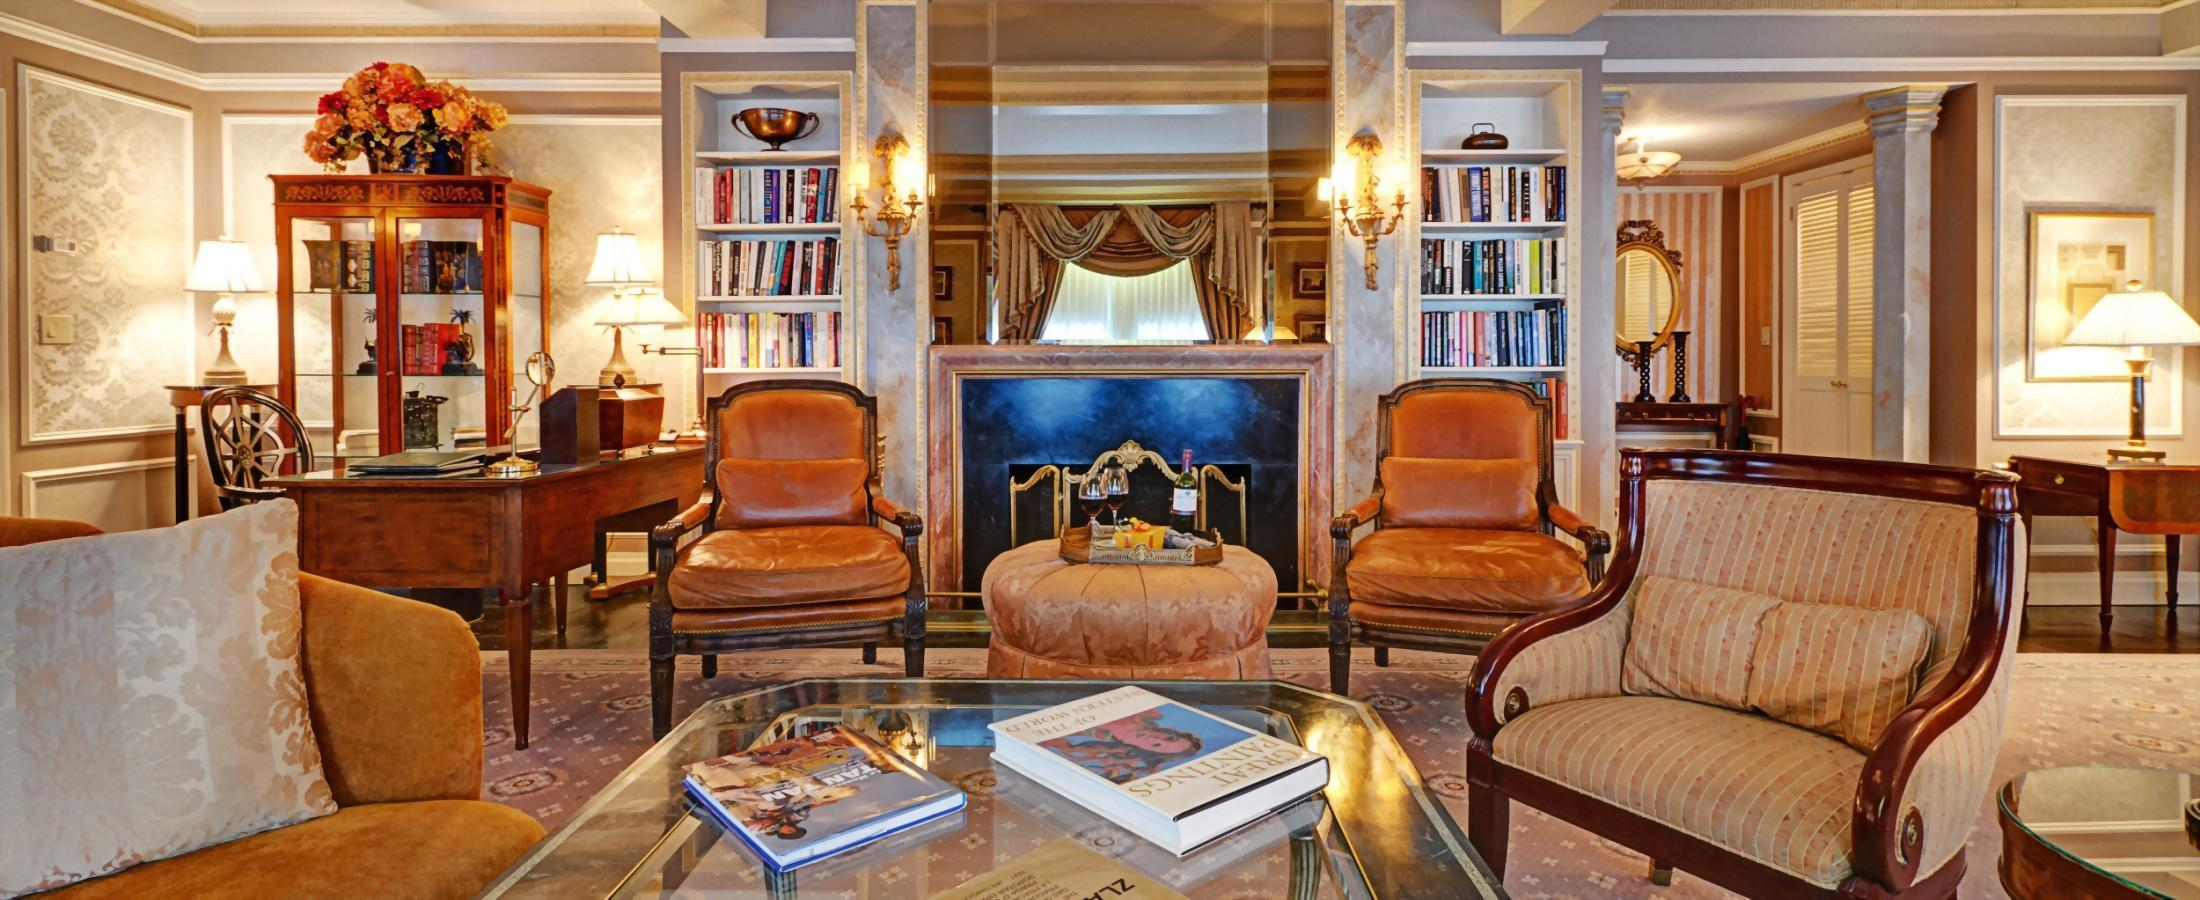 The living room of the Vaclav Havel Suite at the Hotel Elysée has a beautiful non-working fireplace.